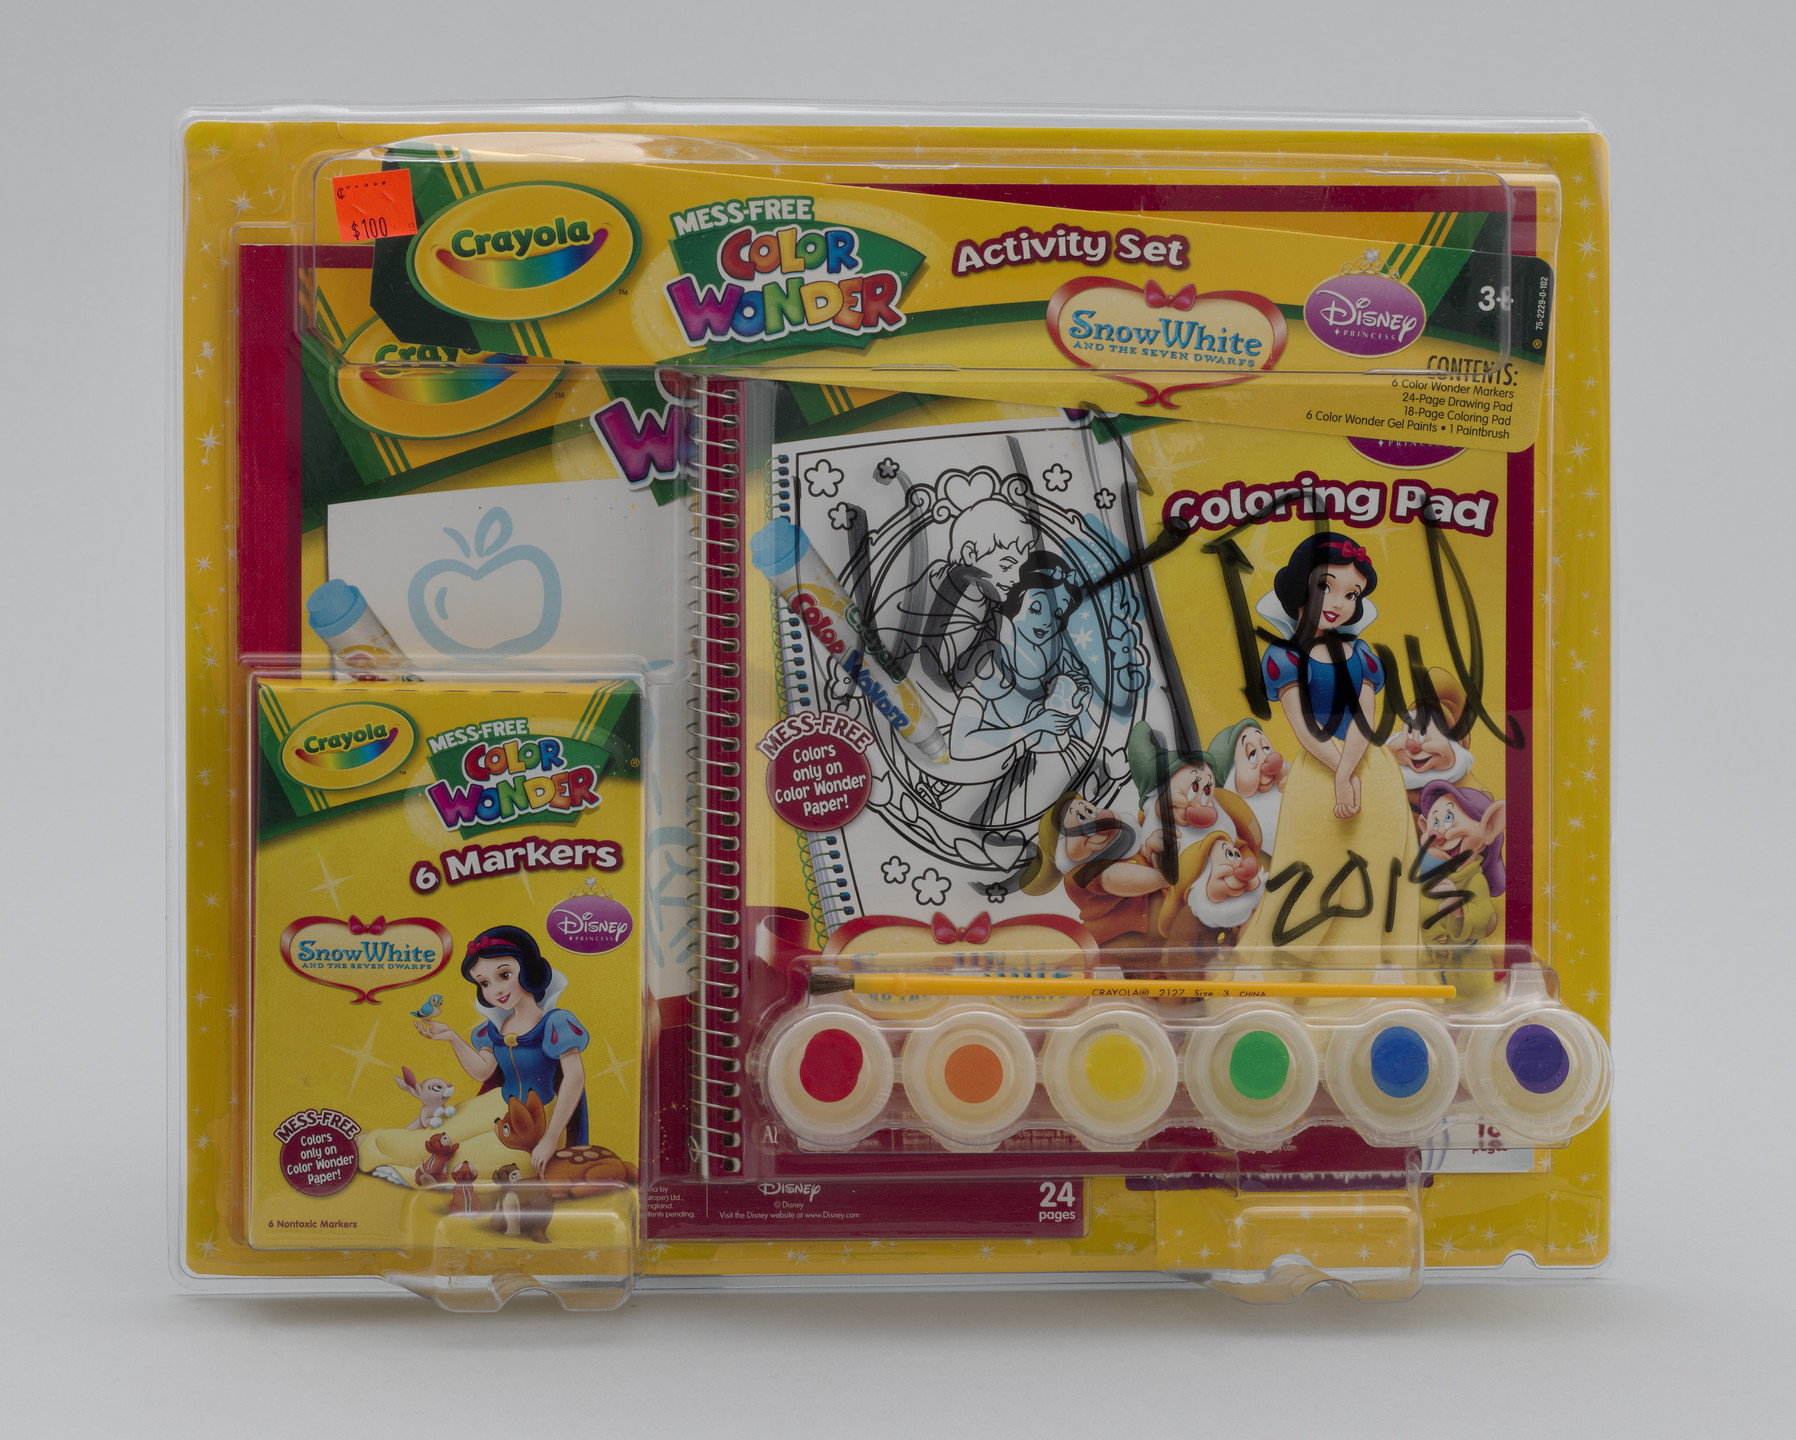 Paul McCarthy. Walt Paul Store, WS, Crayola Mess-Free Color Wonder Activity Ste- Snow White. 2013